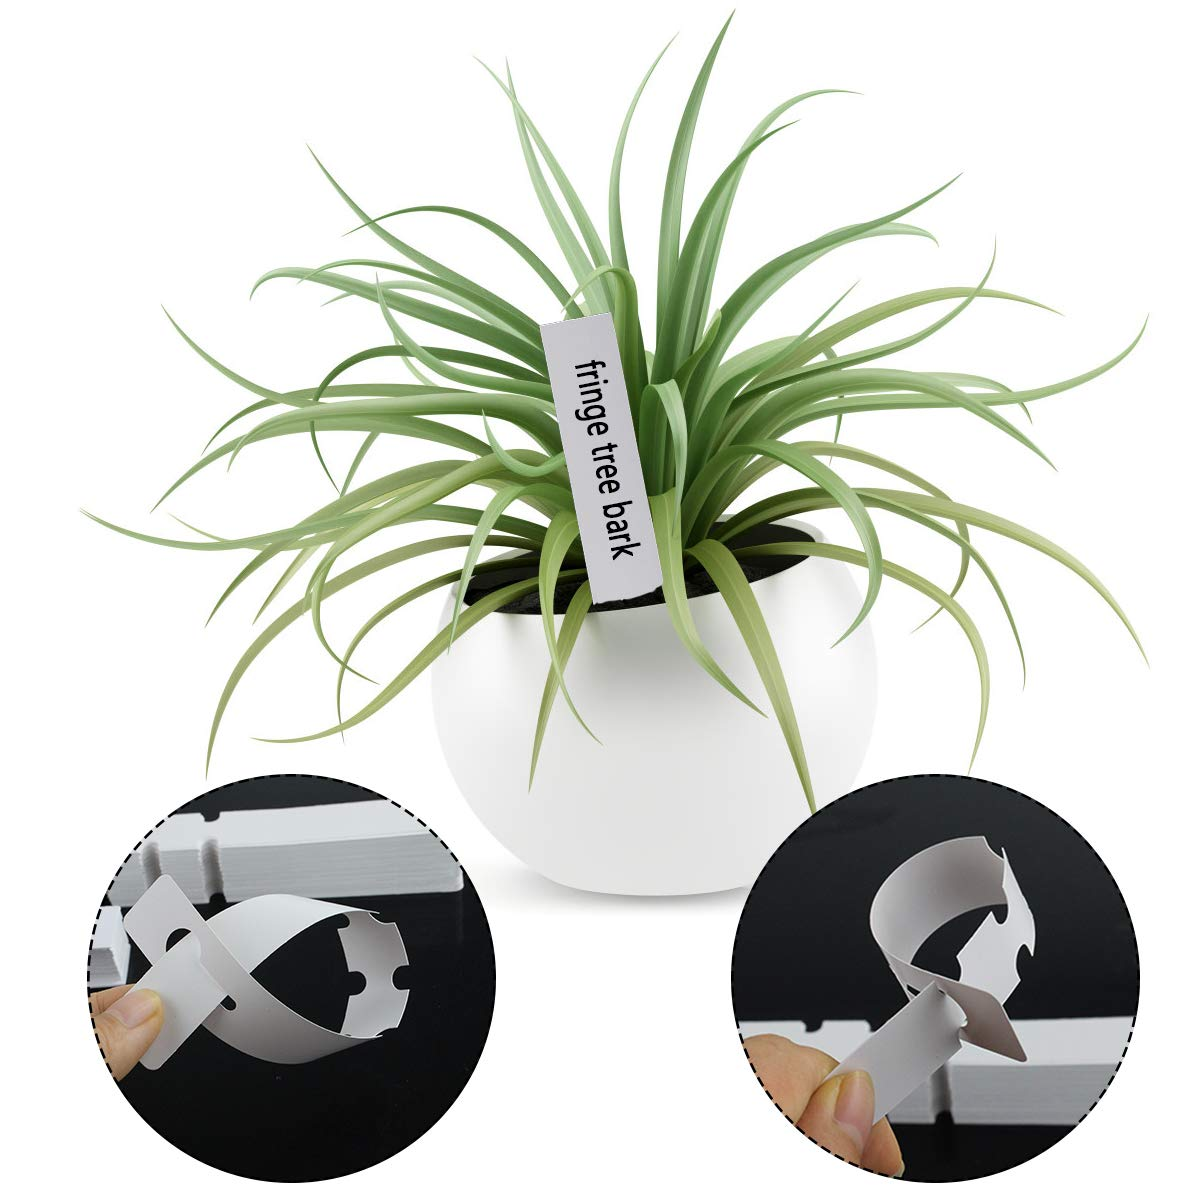 Bantoye 200 Pcs Plastic Plant Labels 100Pcs 8.3 Inch Plant Tree Tags /& 100 Pcs 3.9 Inch Plant Tag Markers for Nursery Garden White